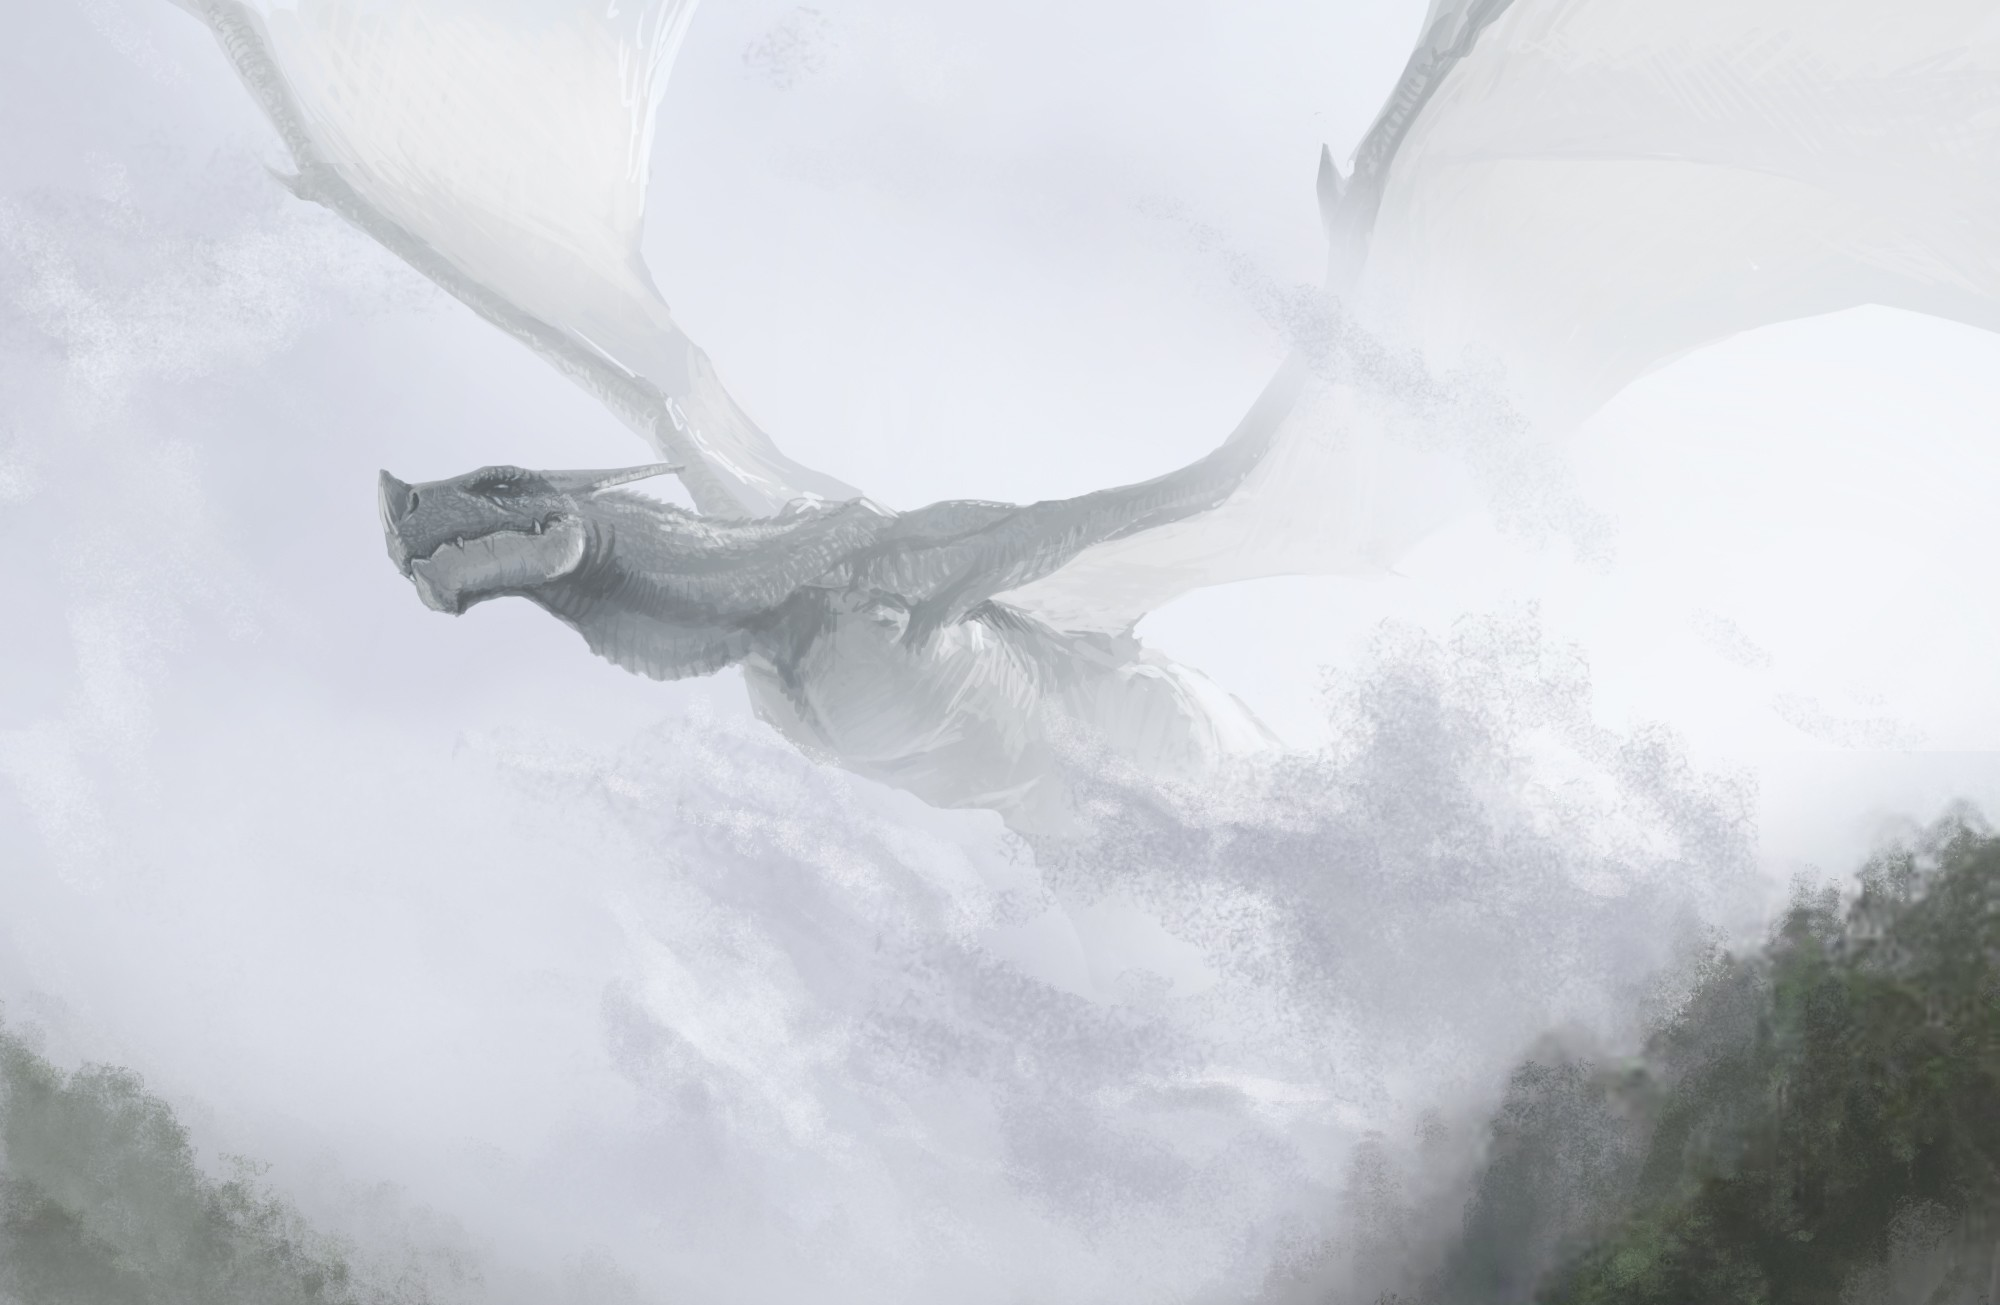 Art dragon flying hills fog fantasy dragons wallpaper 2000x1305 2000x1305